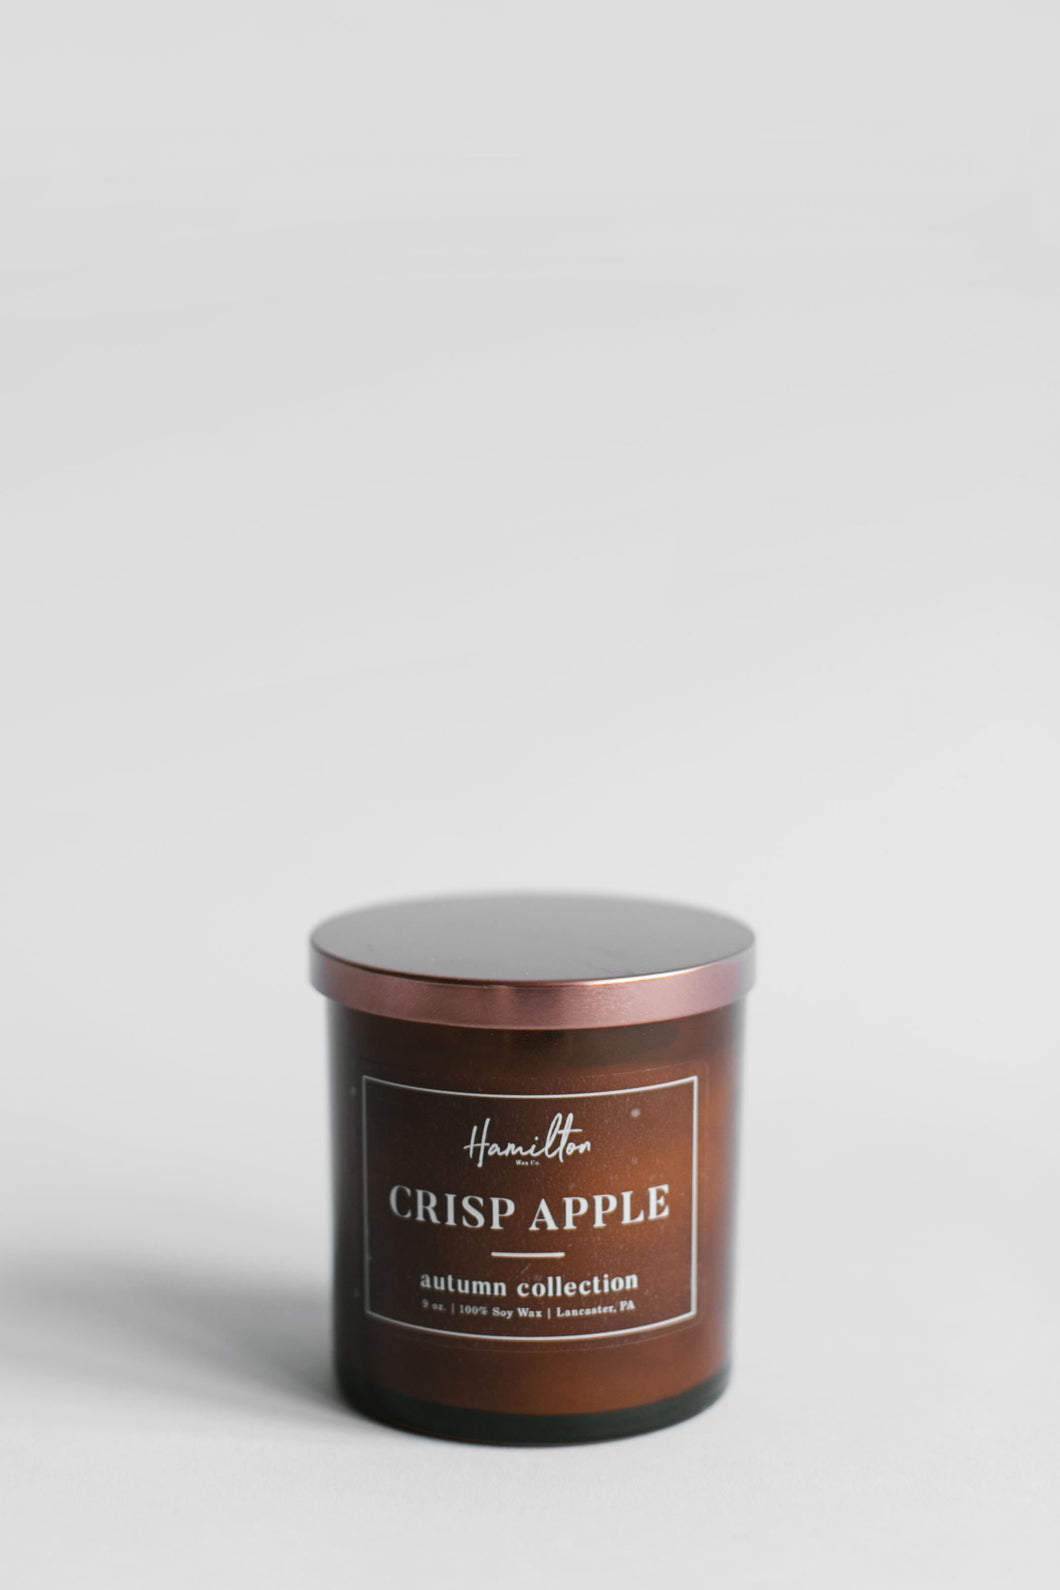 Crisp Apple - Last season's labels